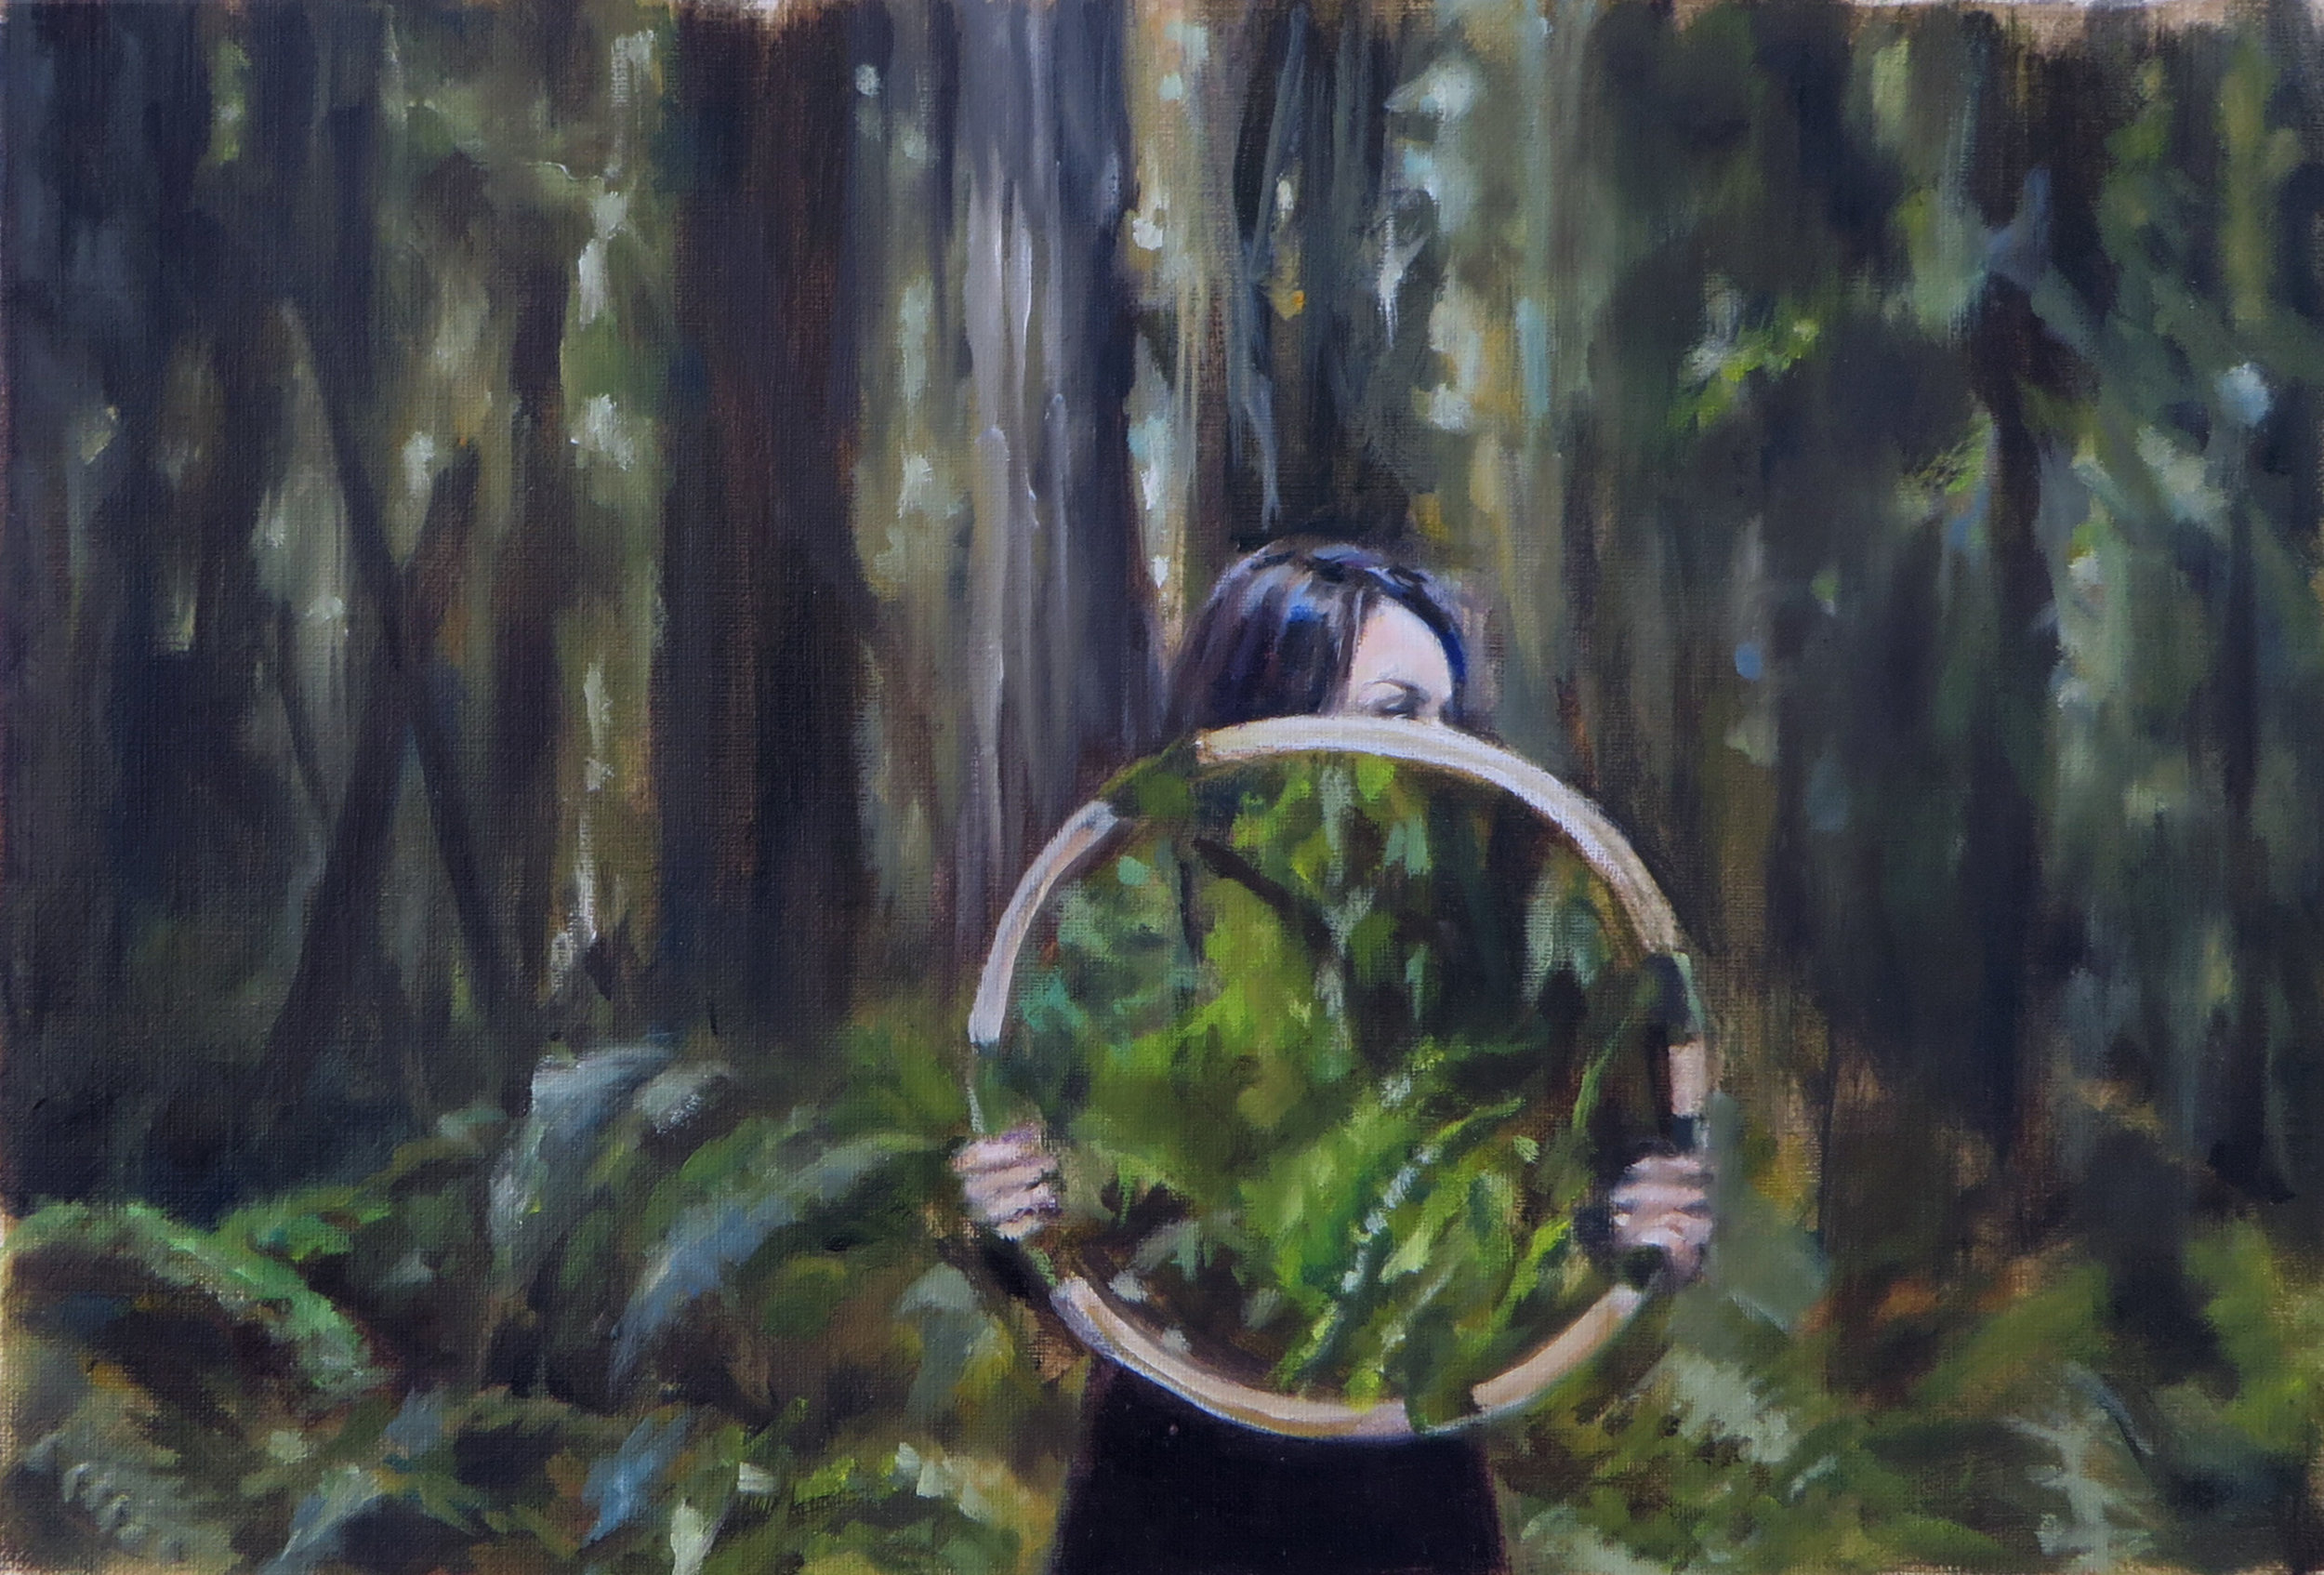 mirror_in_the_forest.jpg